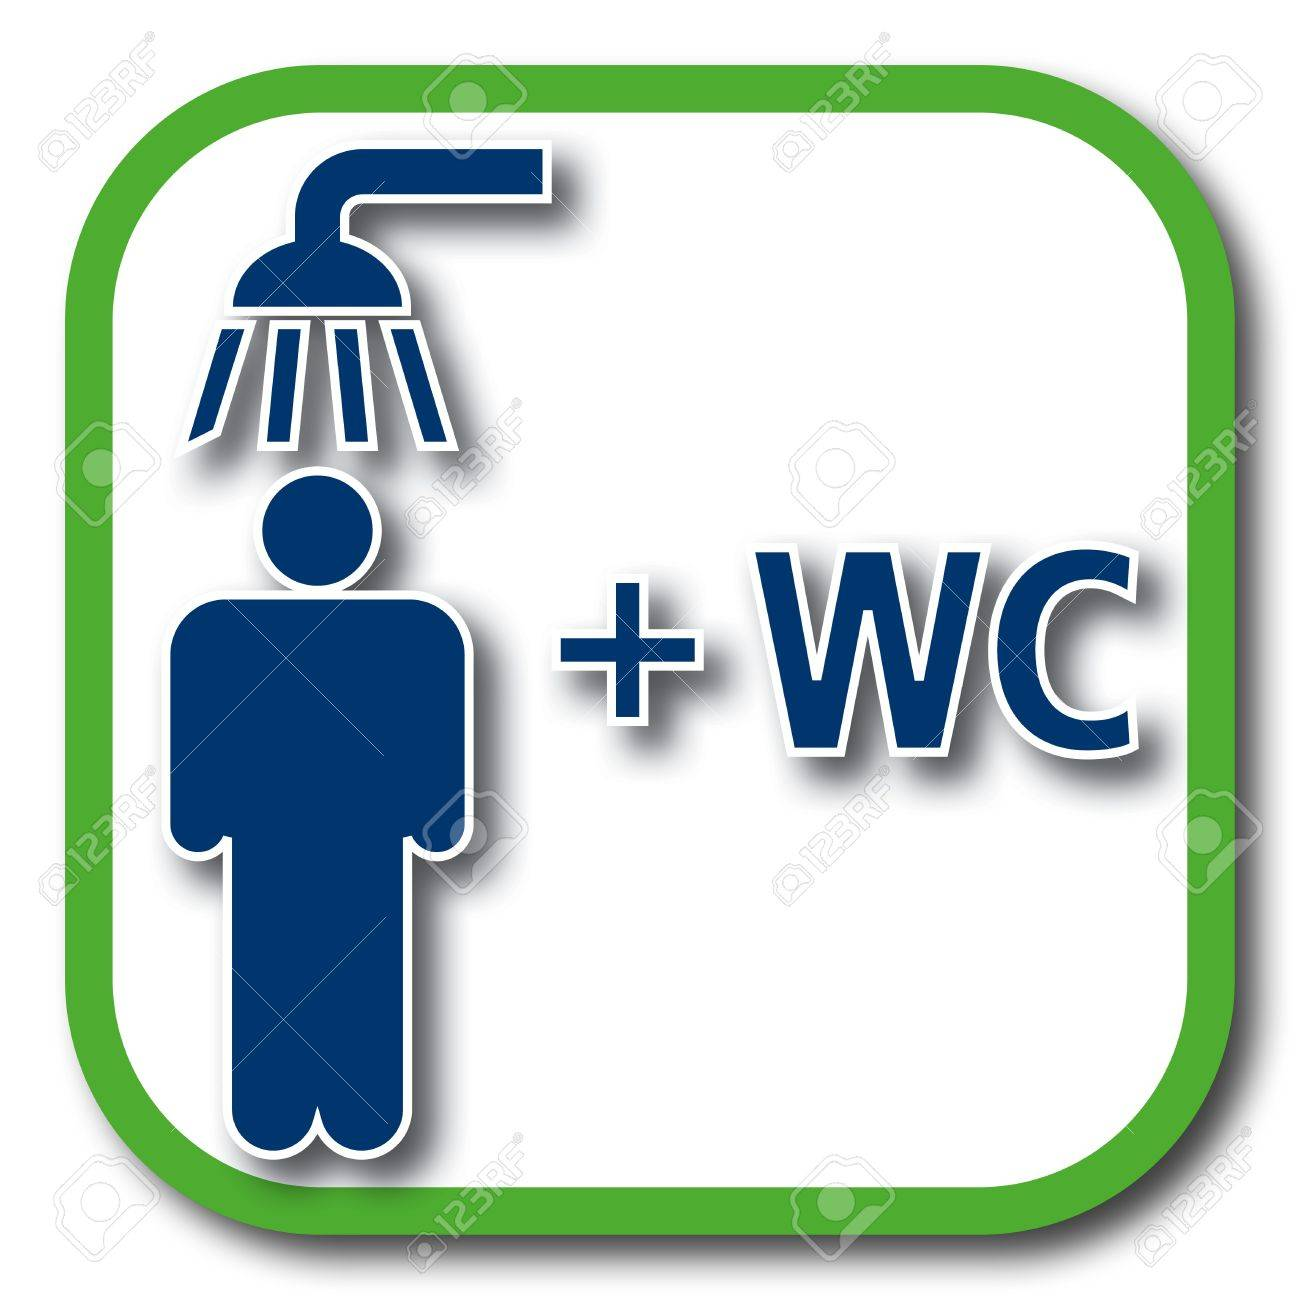 Dusche clipart  Shower Plus Wc Icon Royalty Free Cliparts, Vectors, And Stock ...